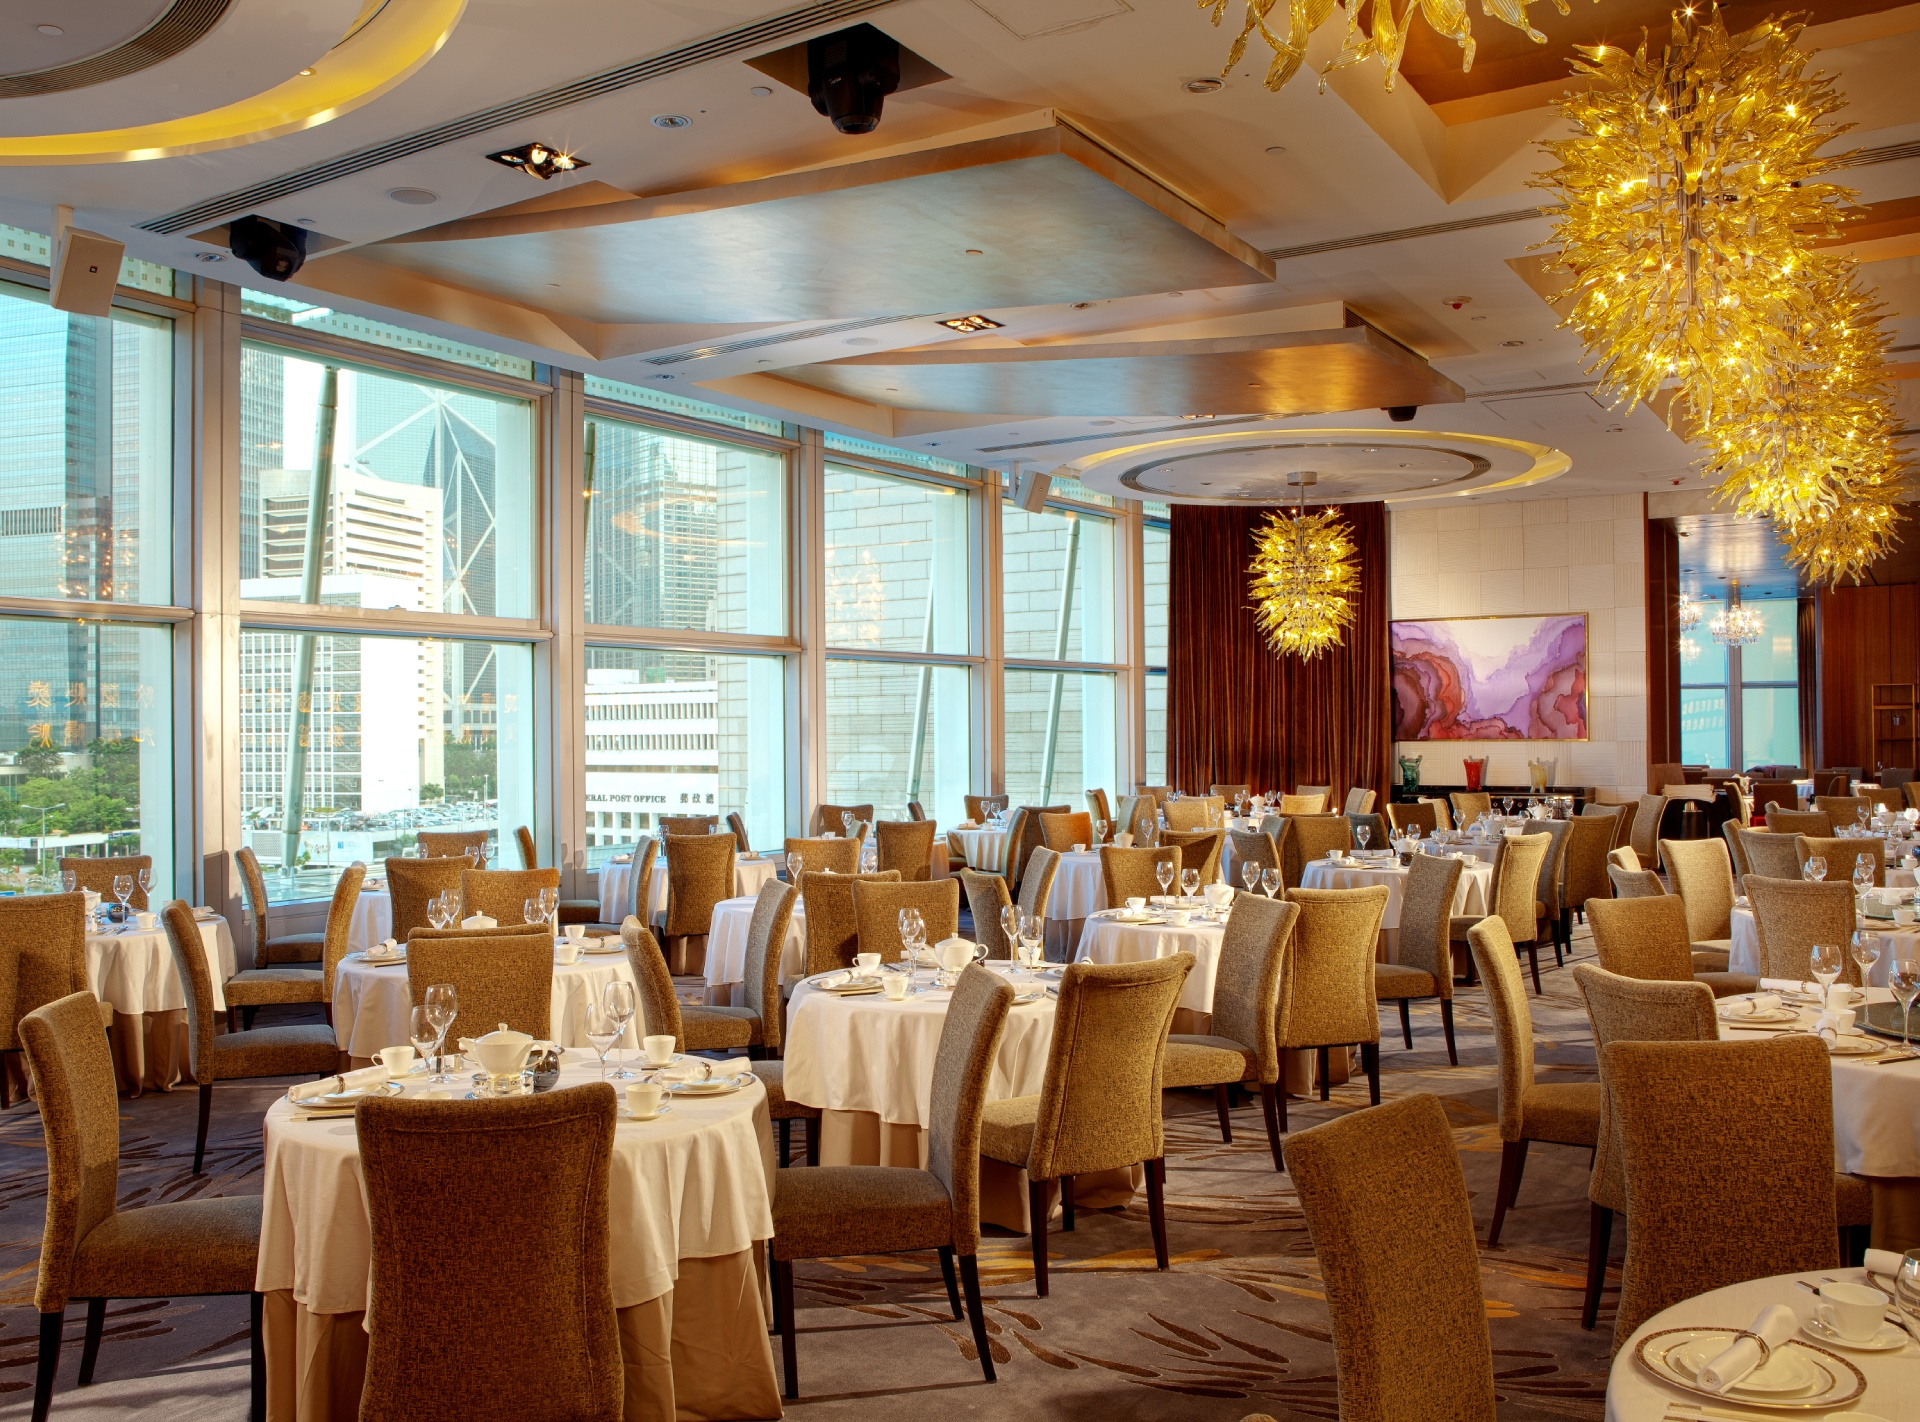 Cuisine Cuisine Mira Dining Cuisine Cuisine Chinese Restaurant In Hong Kong And